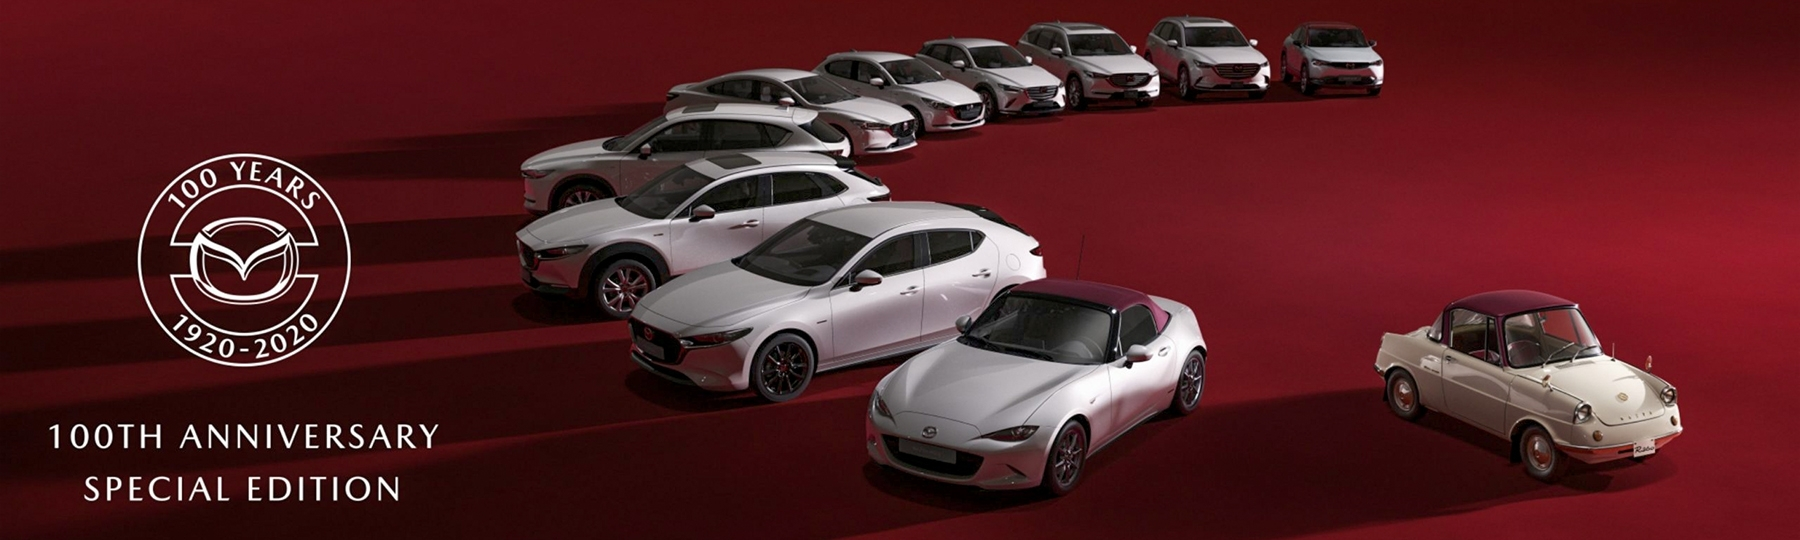 100th Anniversary Special Edition Series Line Up 1 1800x540 201106